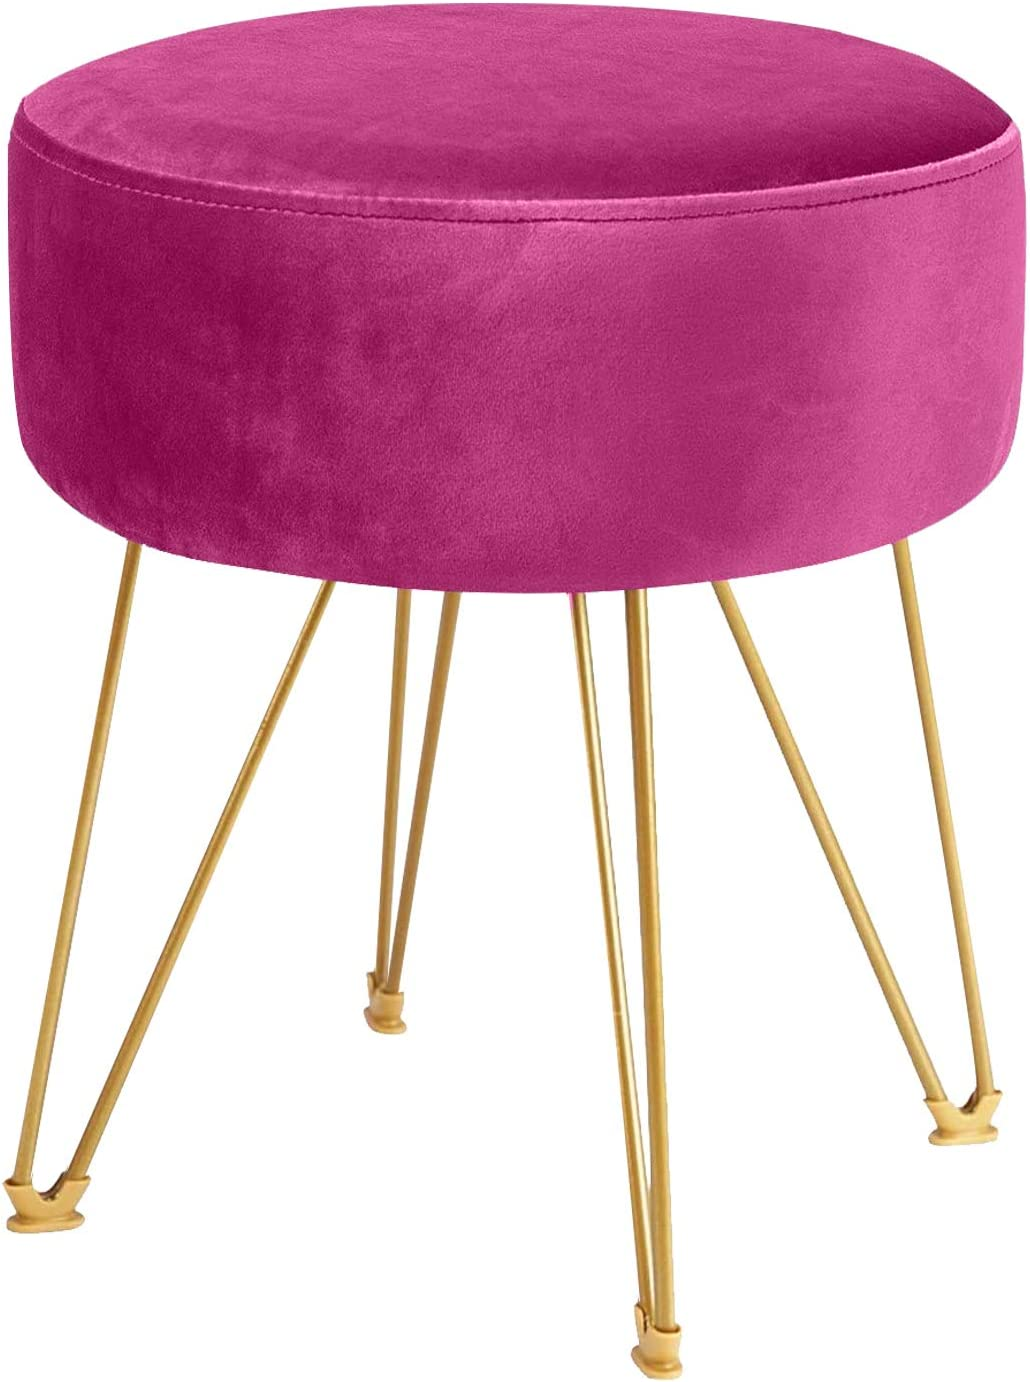 ERONE Round Footstool Ottoman Velvet Dressing Stool with Gold Metal Legs Upholstered Footrest,Makeup Chair Side Table for Kitchen Bedroom Living Room (Purple)